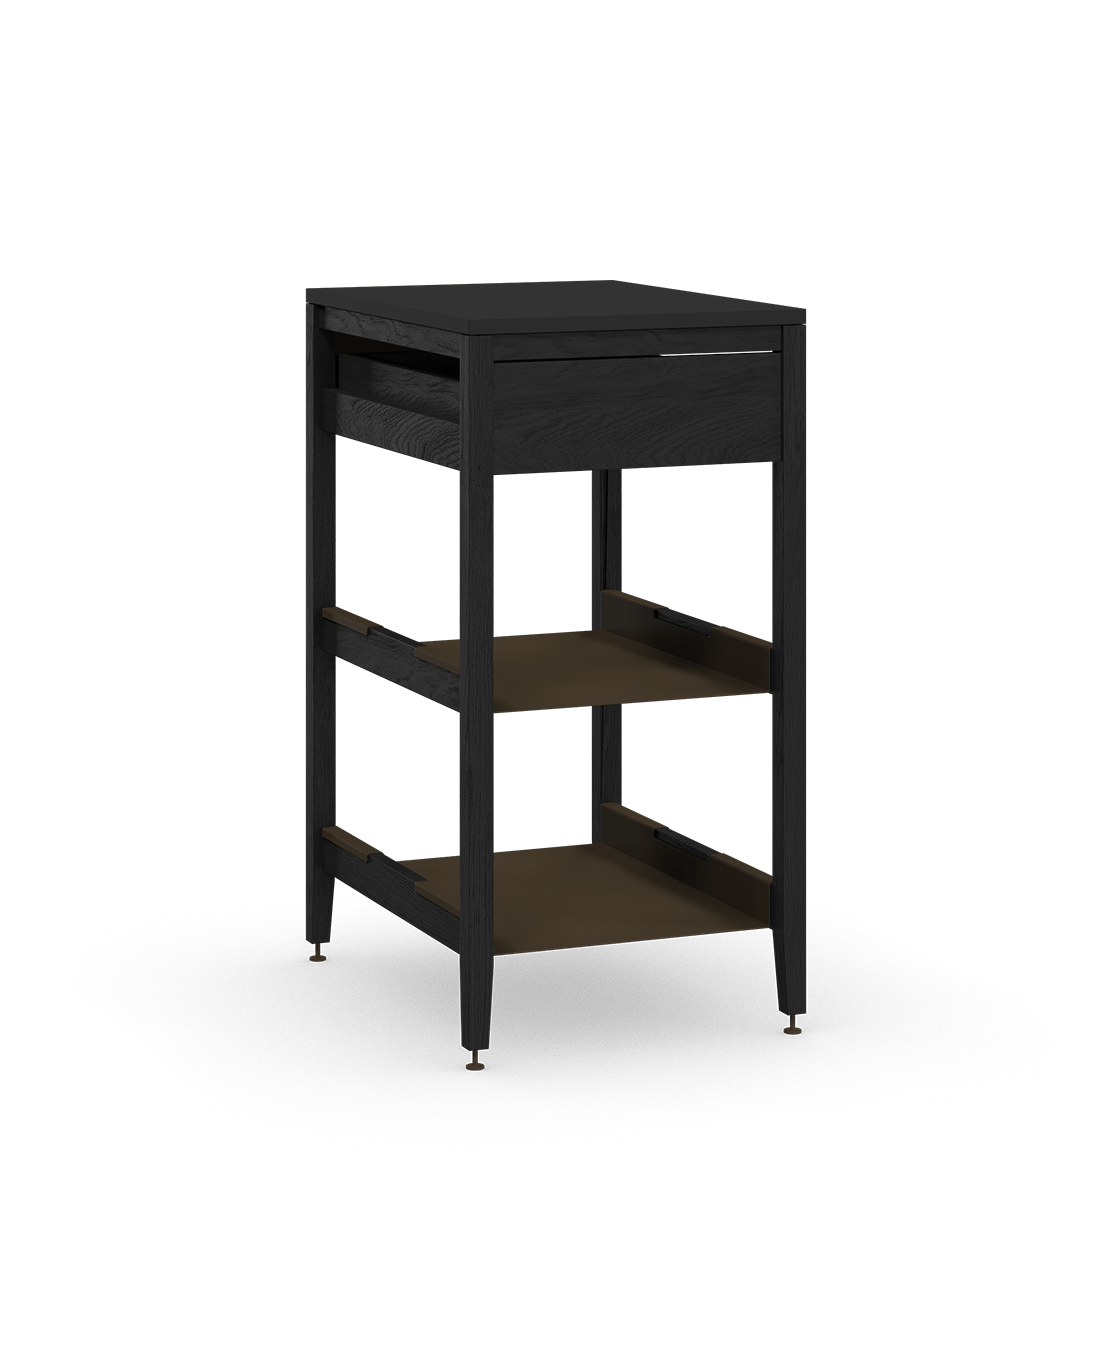 coquo radix midnight black stained oak solid wood modular 2 shelves 1 drawer base kitchen cabinet 21 inch C1-C-21SB-1021-BK